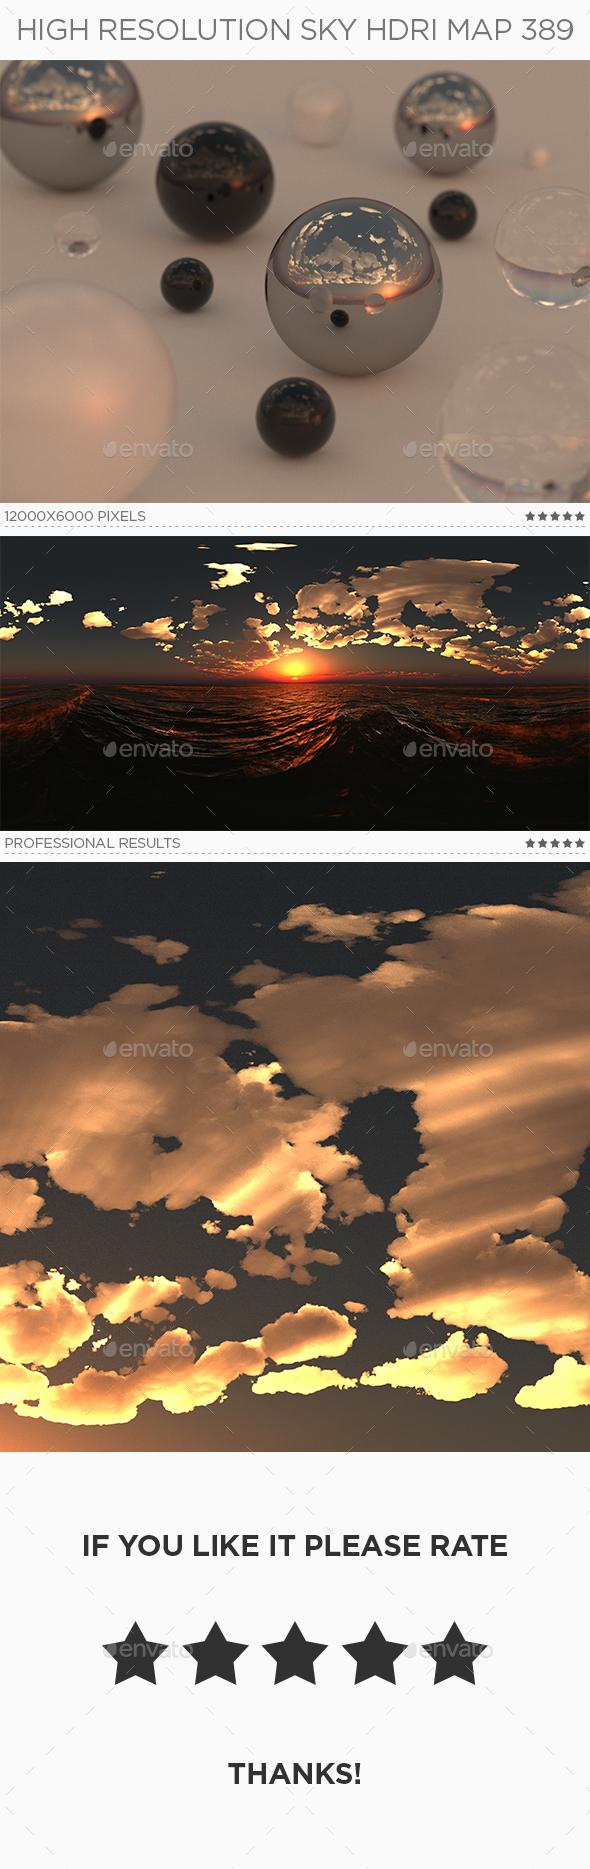 High Resolution Sky HDRi Map 389 - 3DOcean Item for Sale